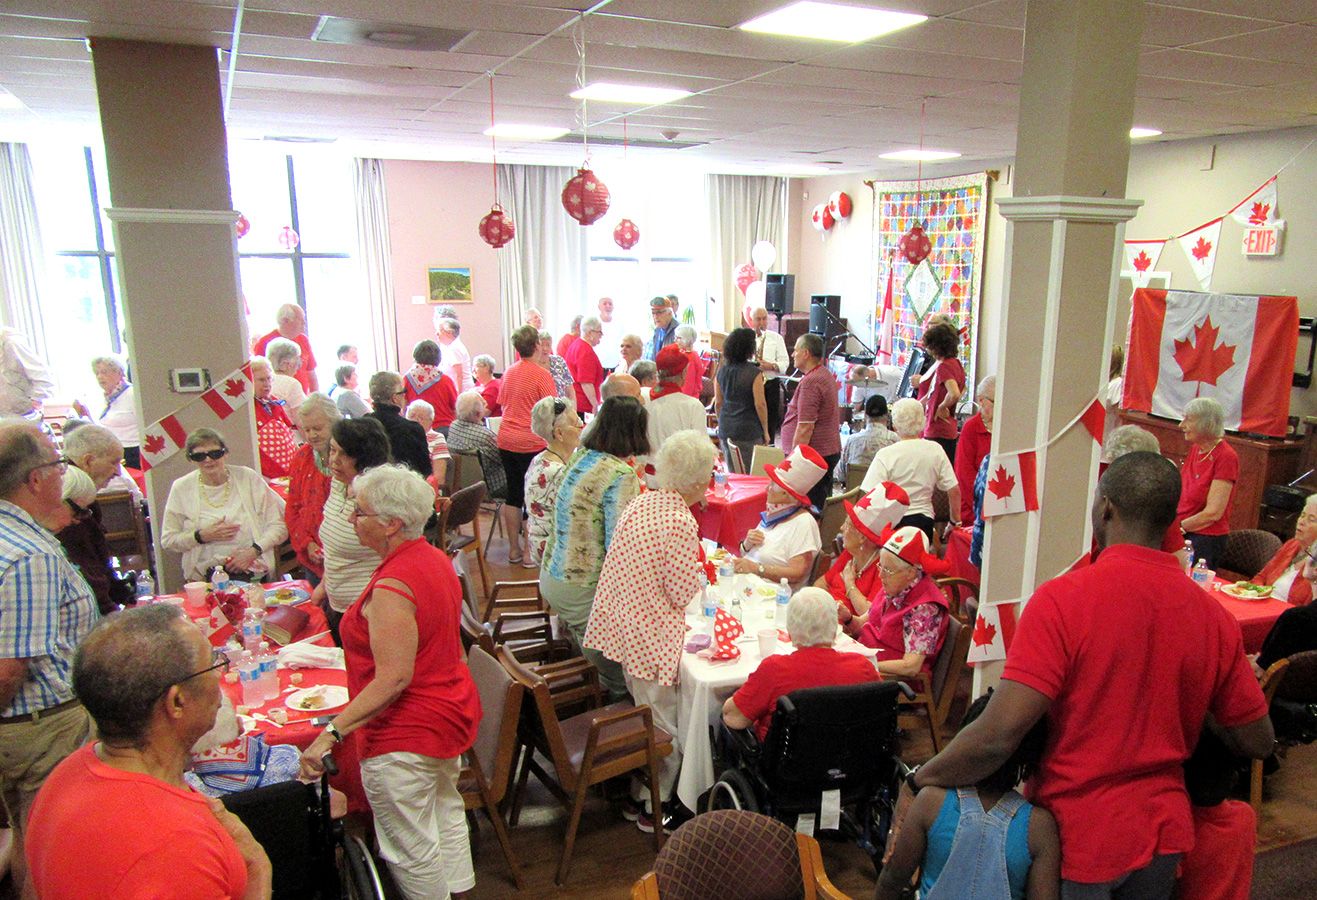 Canada Day celebration at St. Clair and O'Connor Community